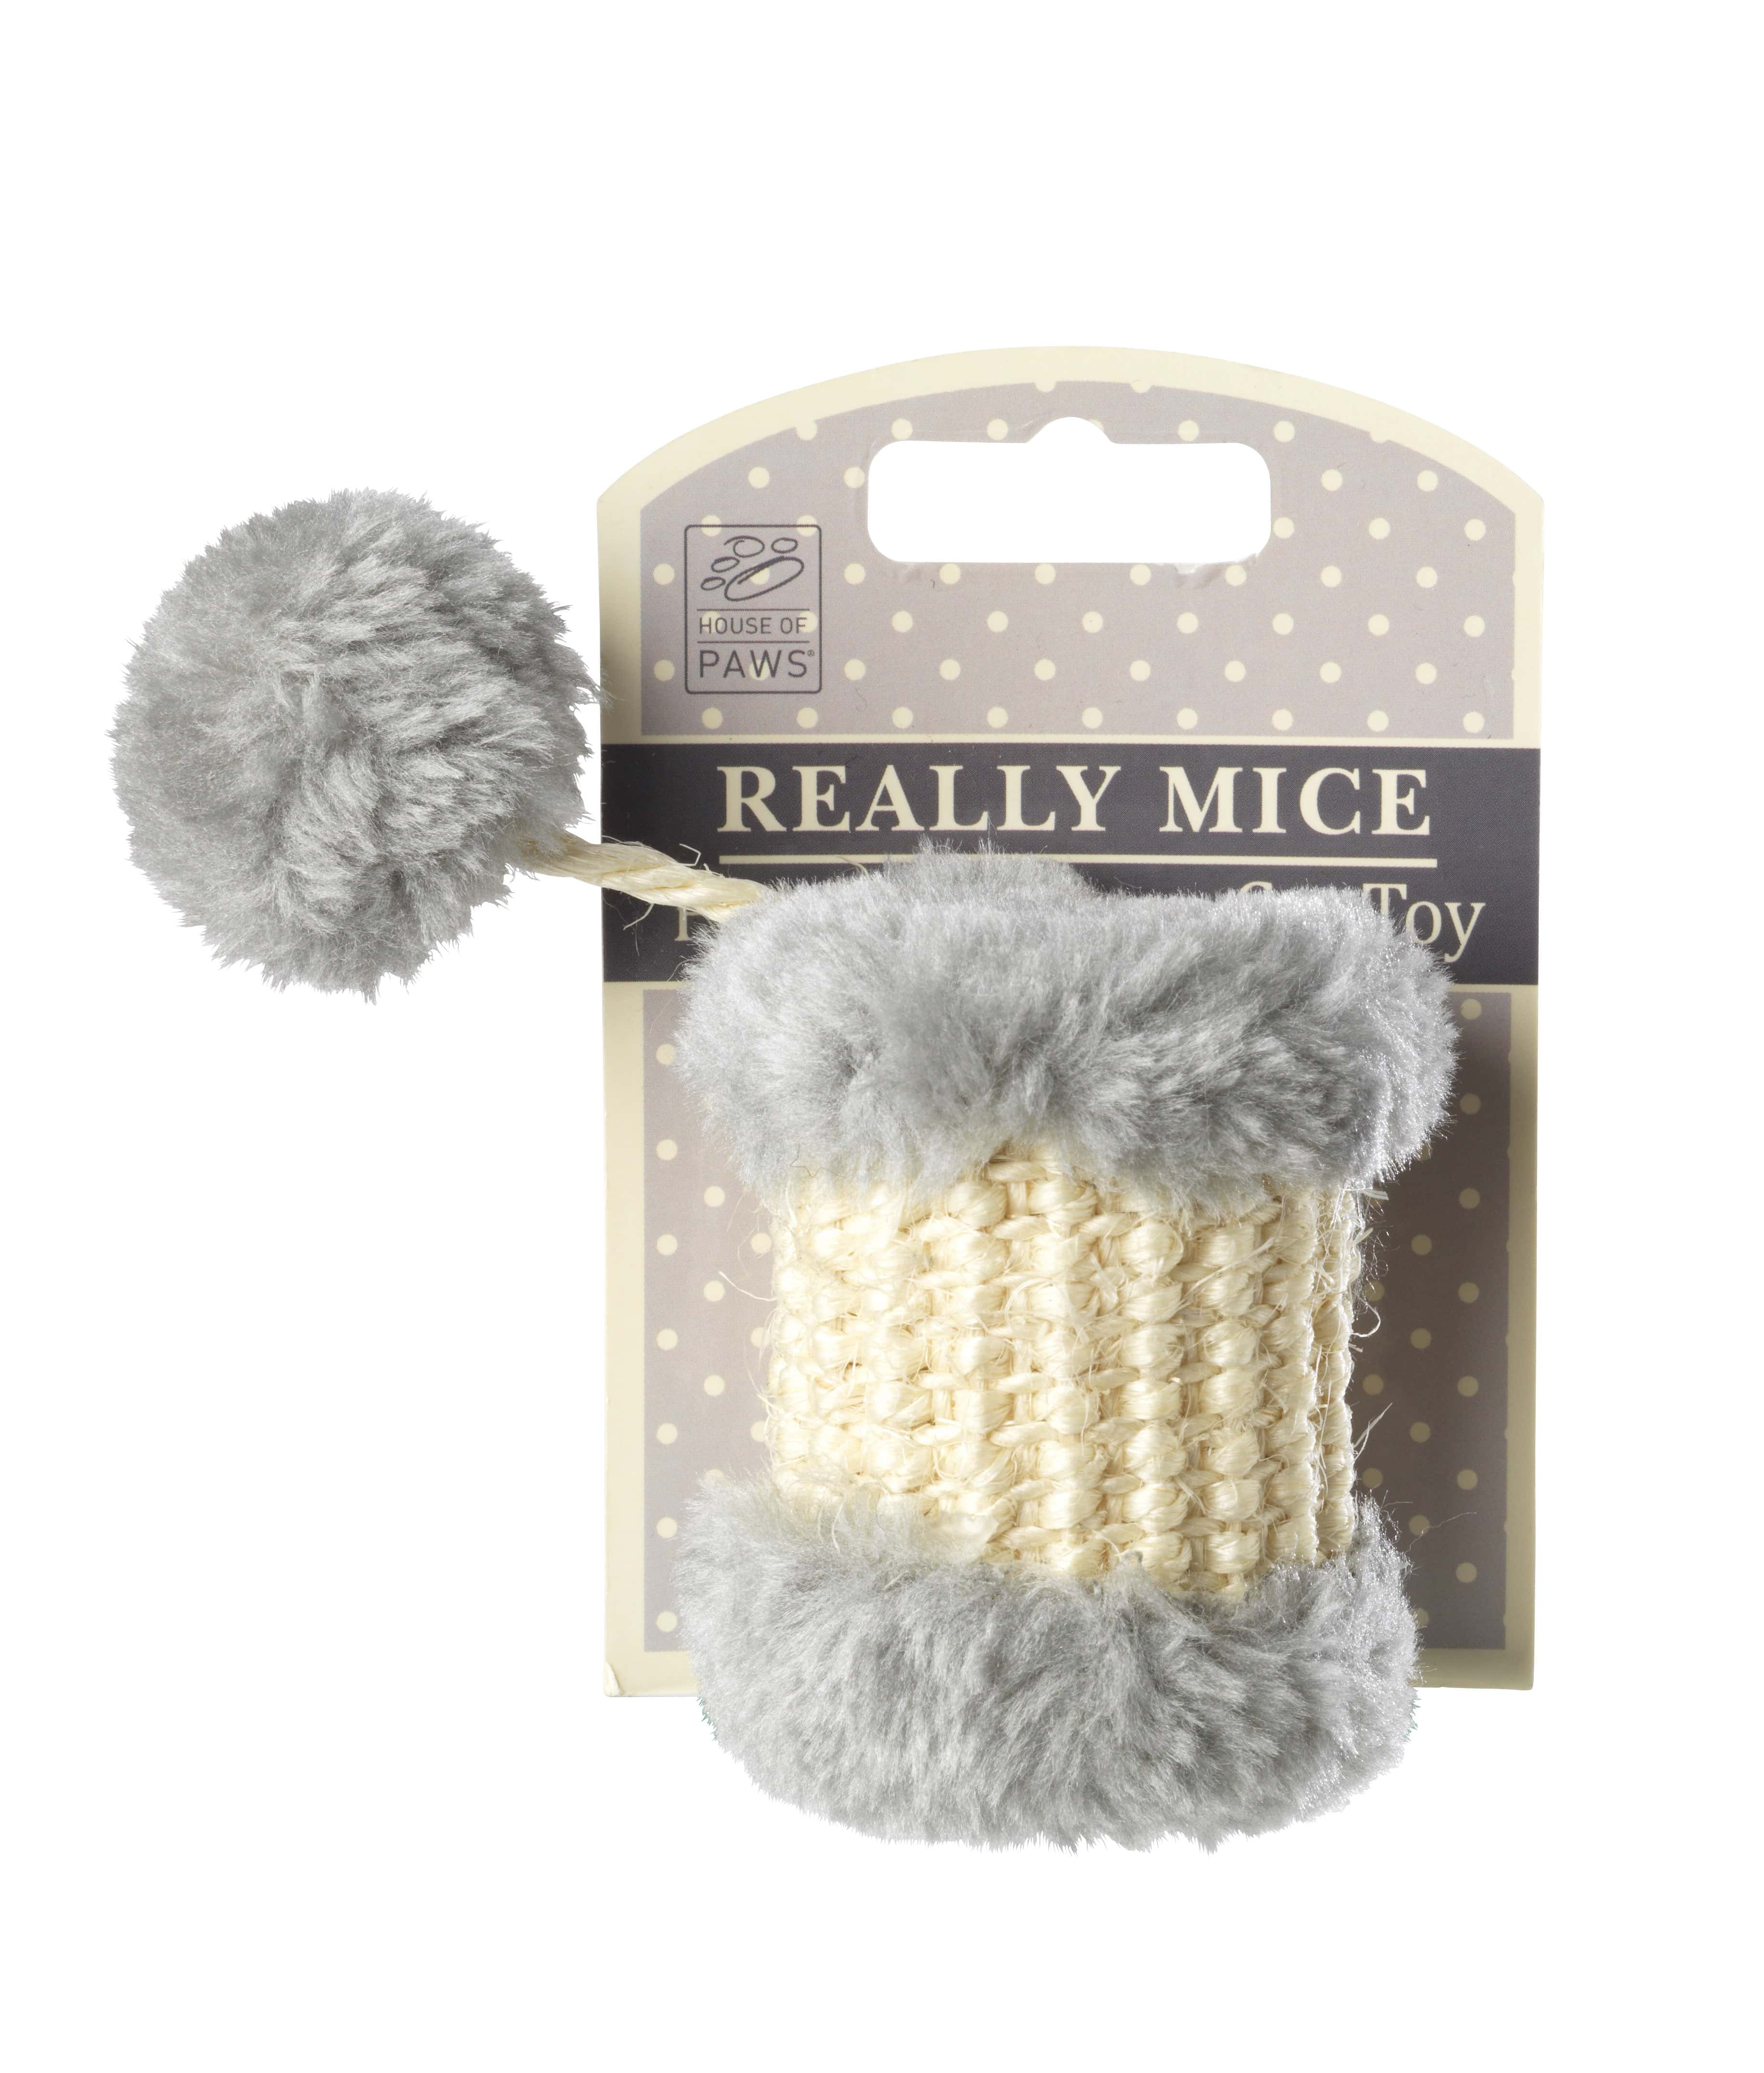 Cylindre pour Chat Really Mice - Pom Pom Drum Cat Toy - HOUSE OF PAWS